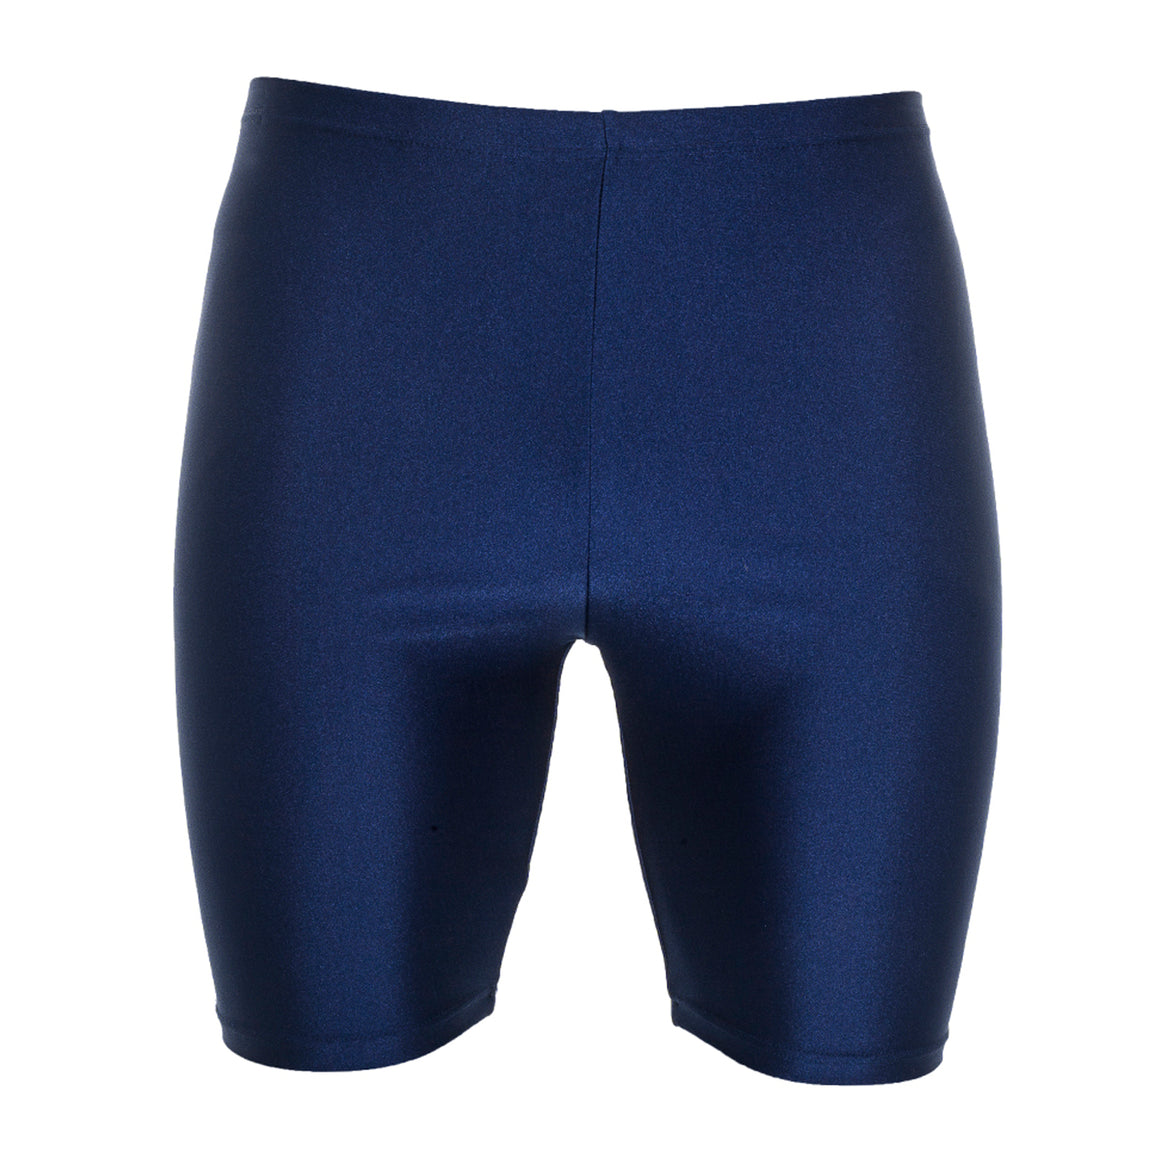 Cycle Shorts in Navy